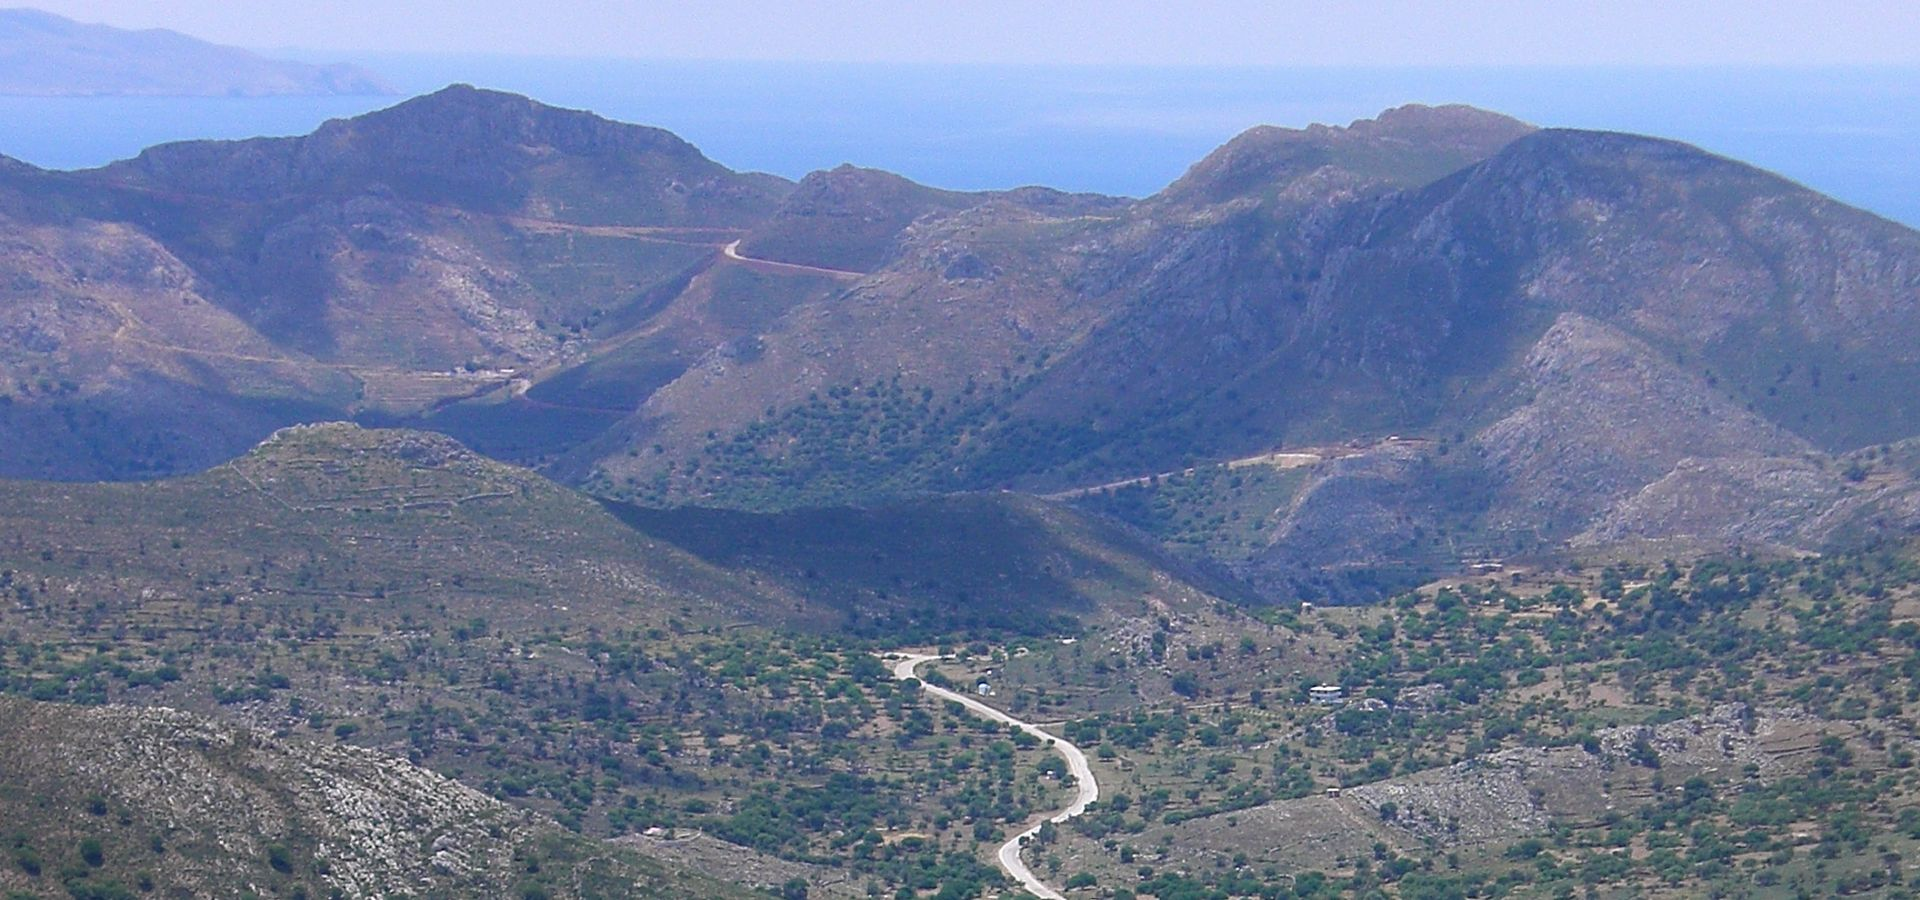 hills of greek island Tilos